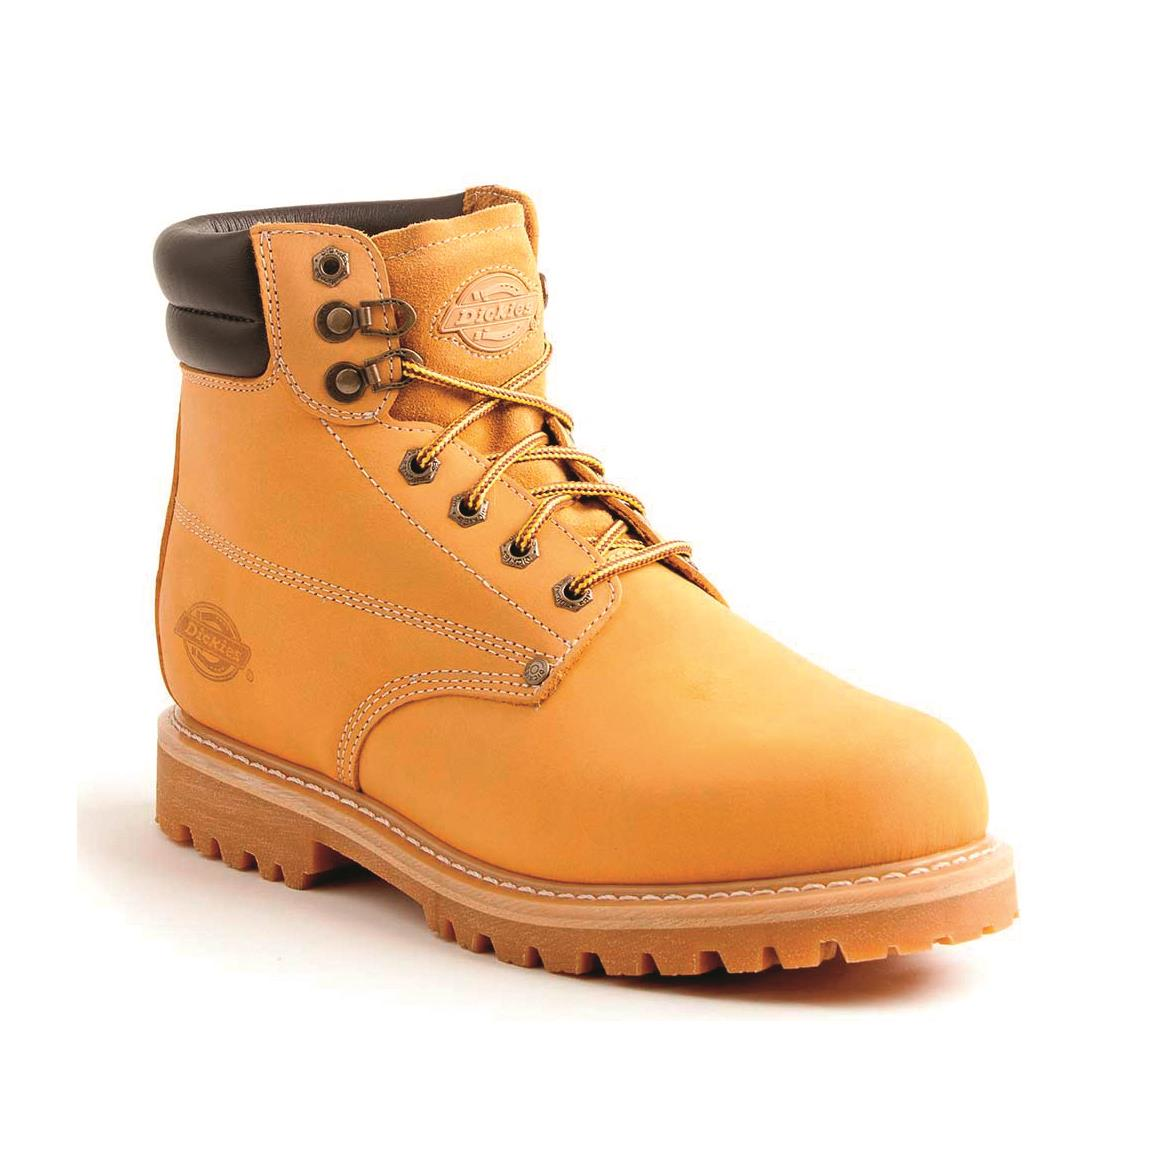 Dickies Men's Raider Work Boots, Wheat